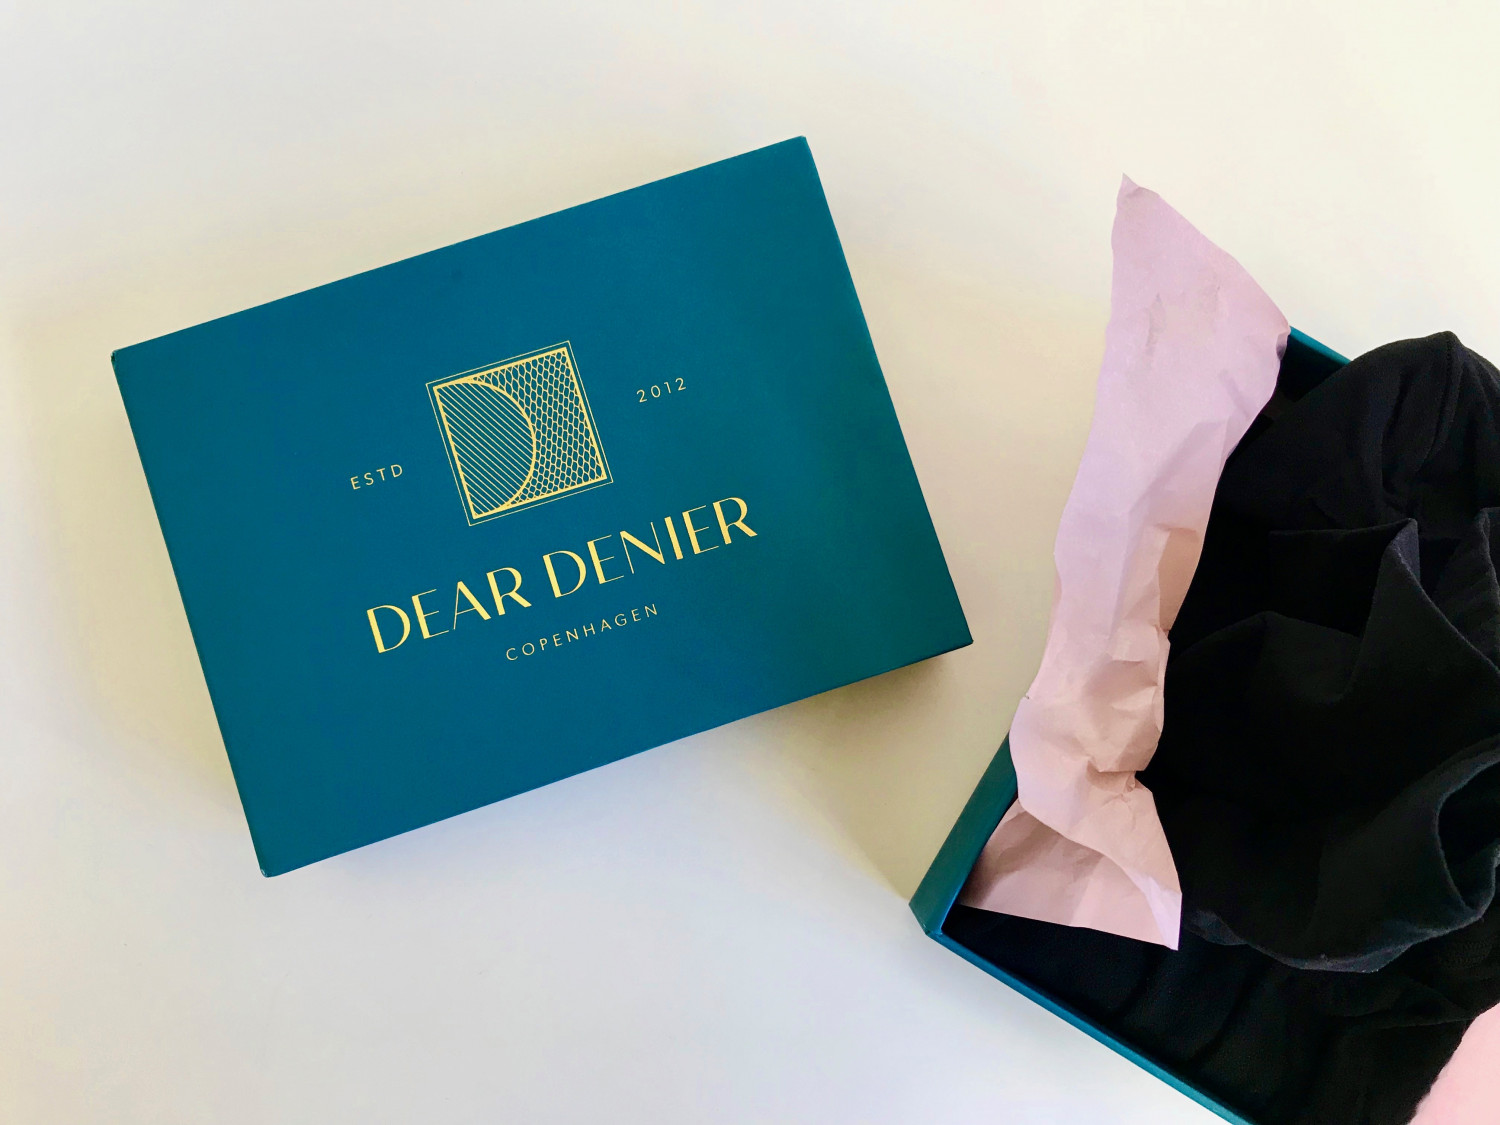 Sustainable Stockings from Dear Denier